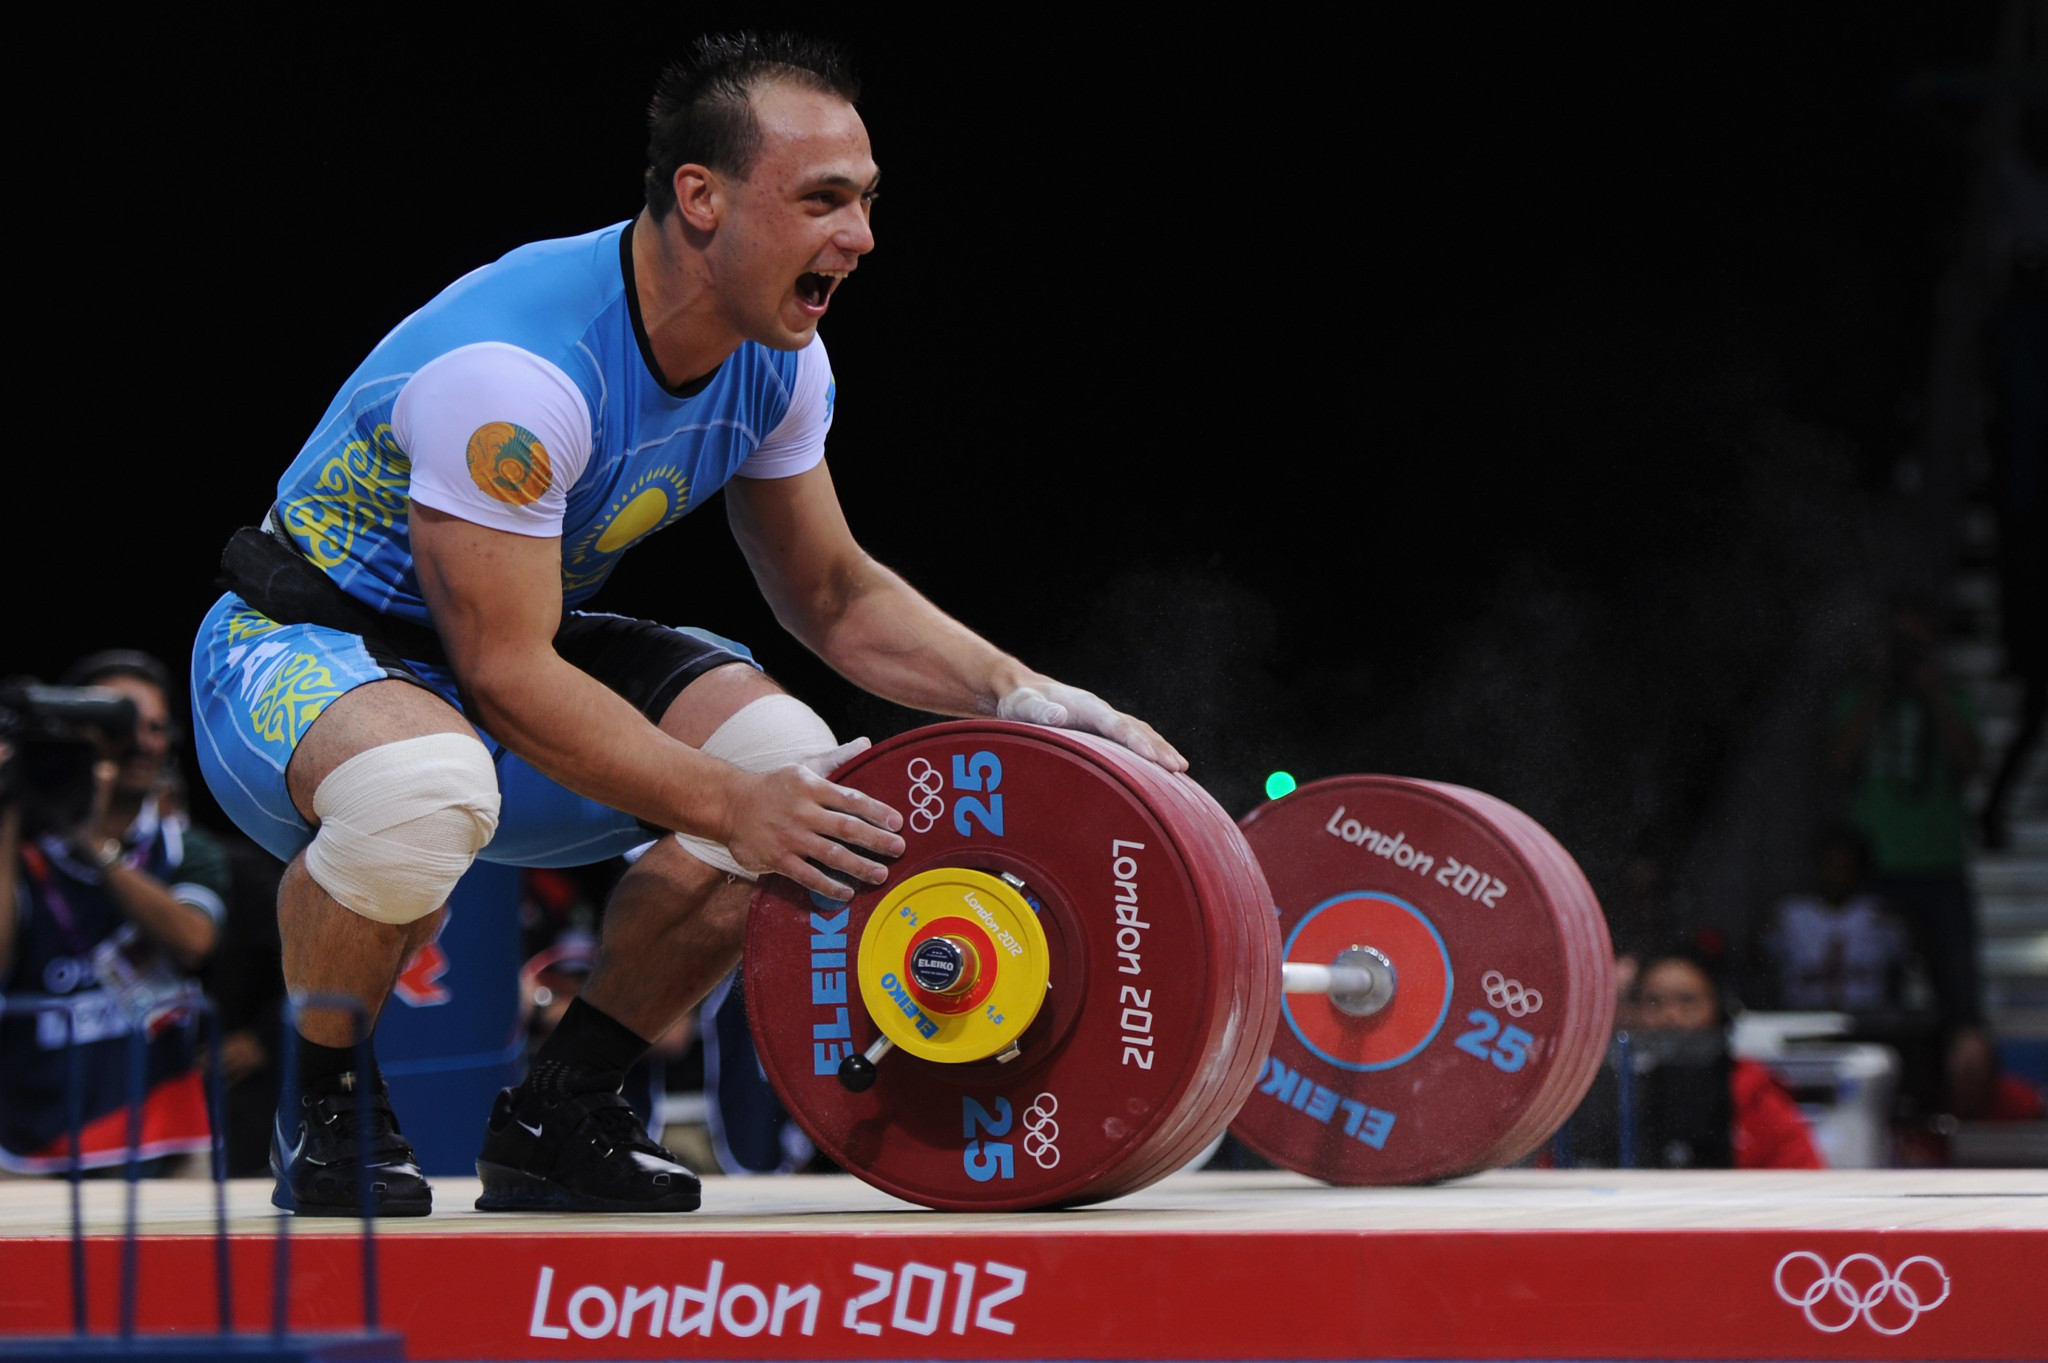 Kazakhstan's Ilya Ilyin is a symbol of a doping past which weightlifting has worked tirelessly to correct ©Getty Images